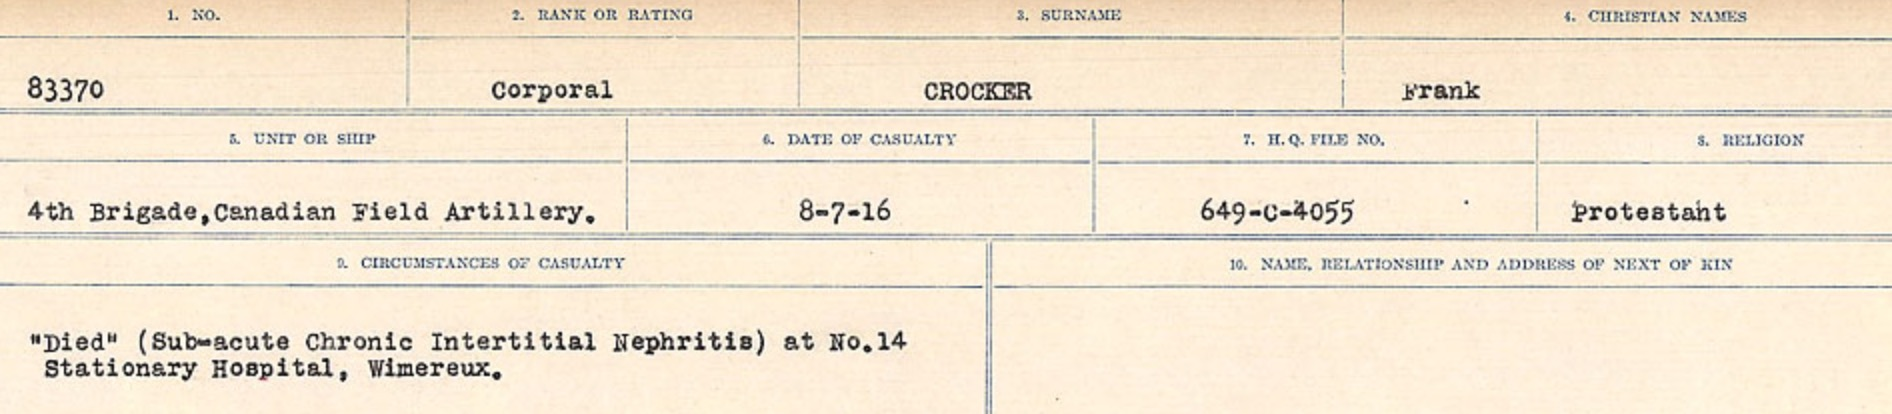 Circumstances of death registers– Source: Library and Archives Canada. CIRCUMSTANCES OF DEATH REGISTERS, FIRST WORLD WAR Surnames: CRABB TO CROSSLAND Microform Sequence 24; Volume Number 31829_B016733. Reference RG150, 1992-93/314, 168. Page 577 of 788